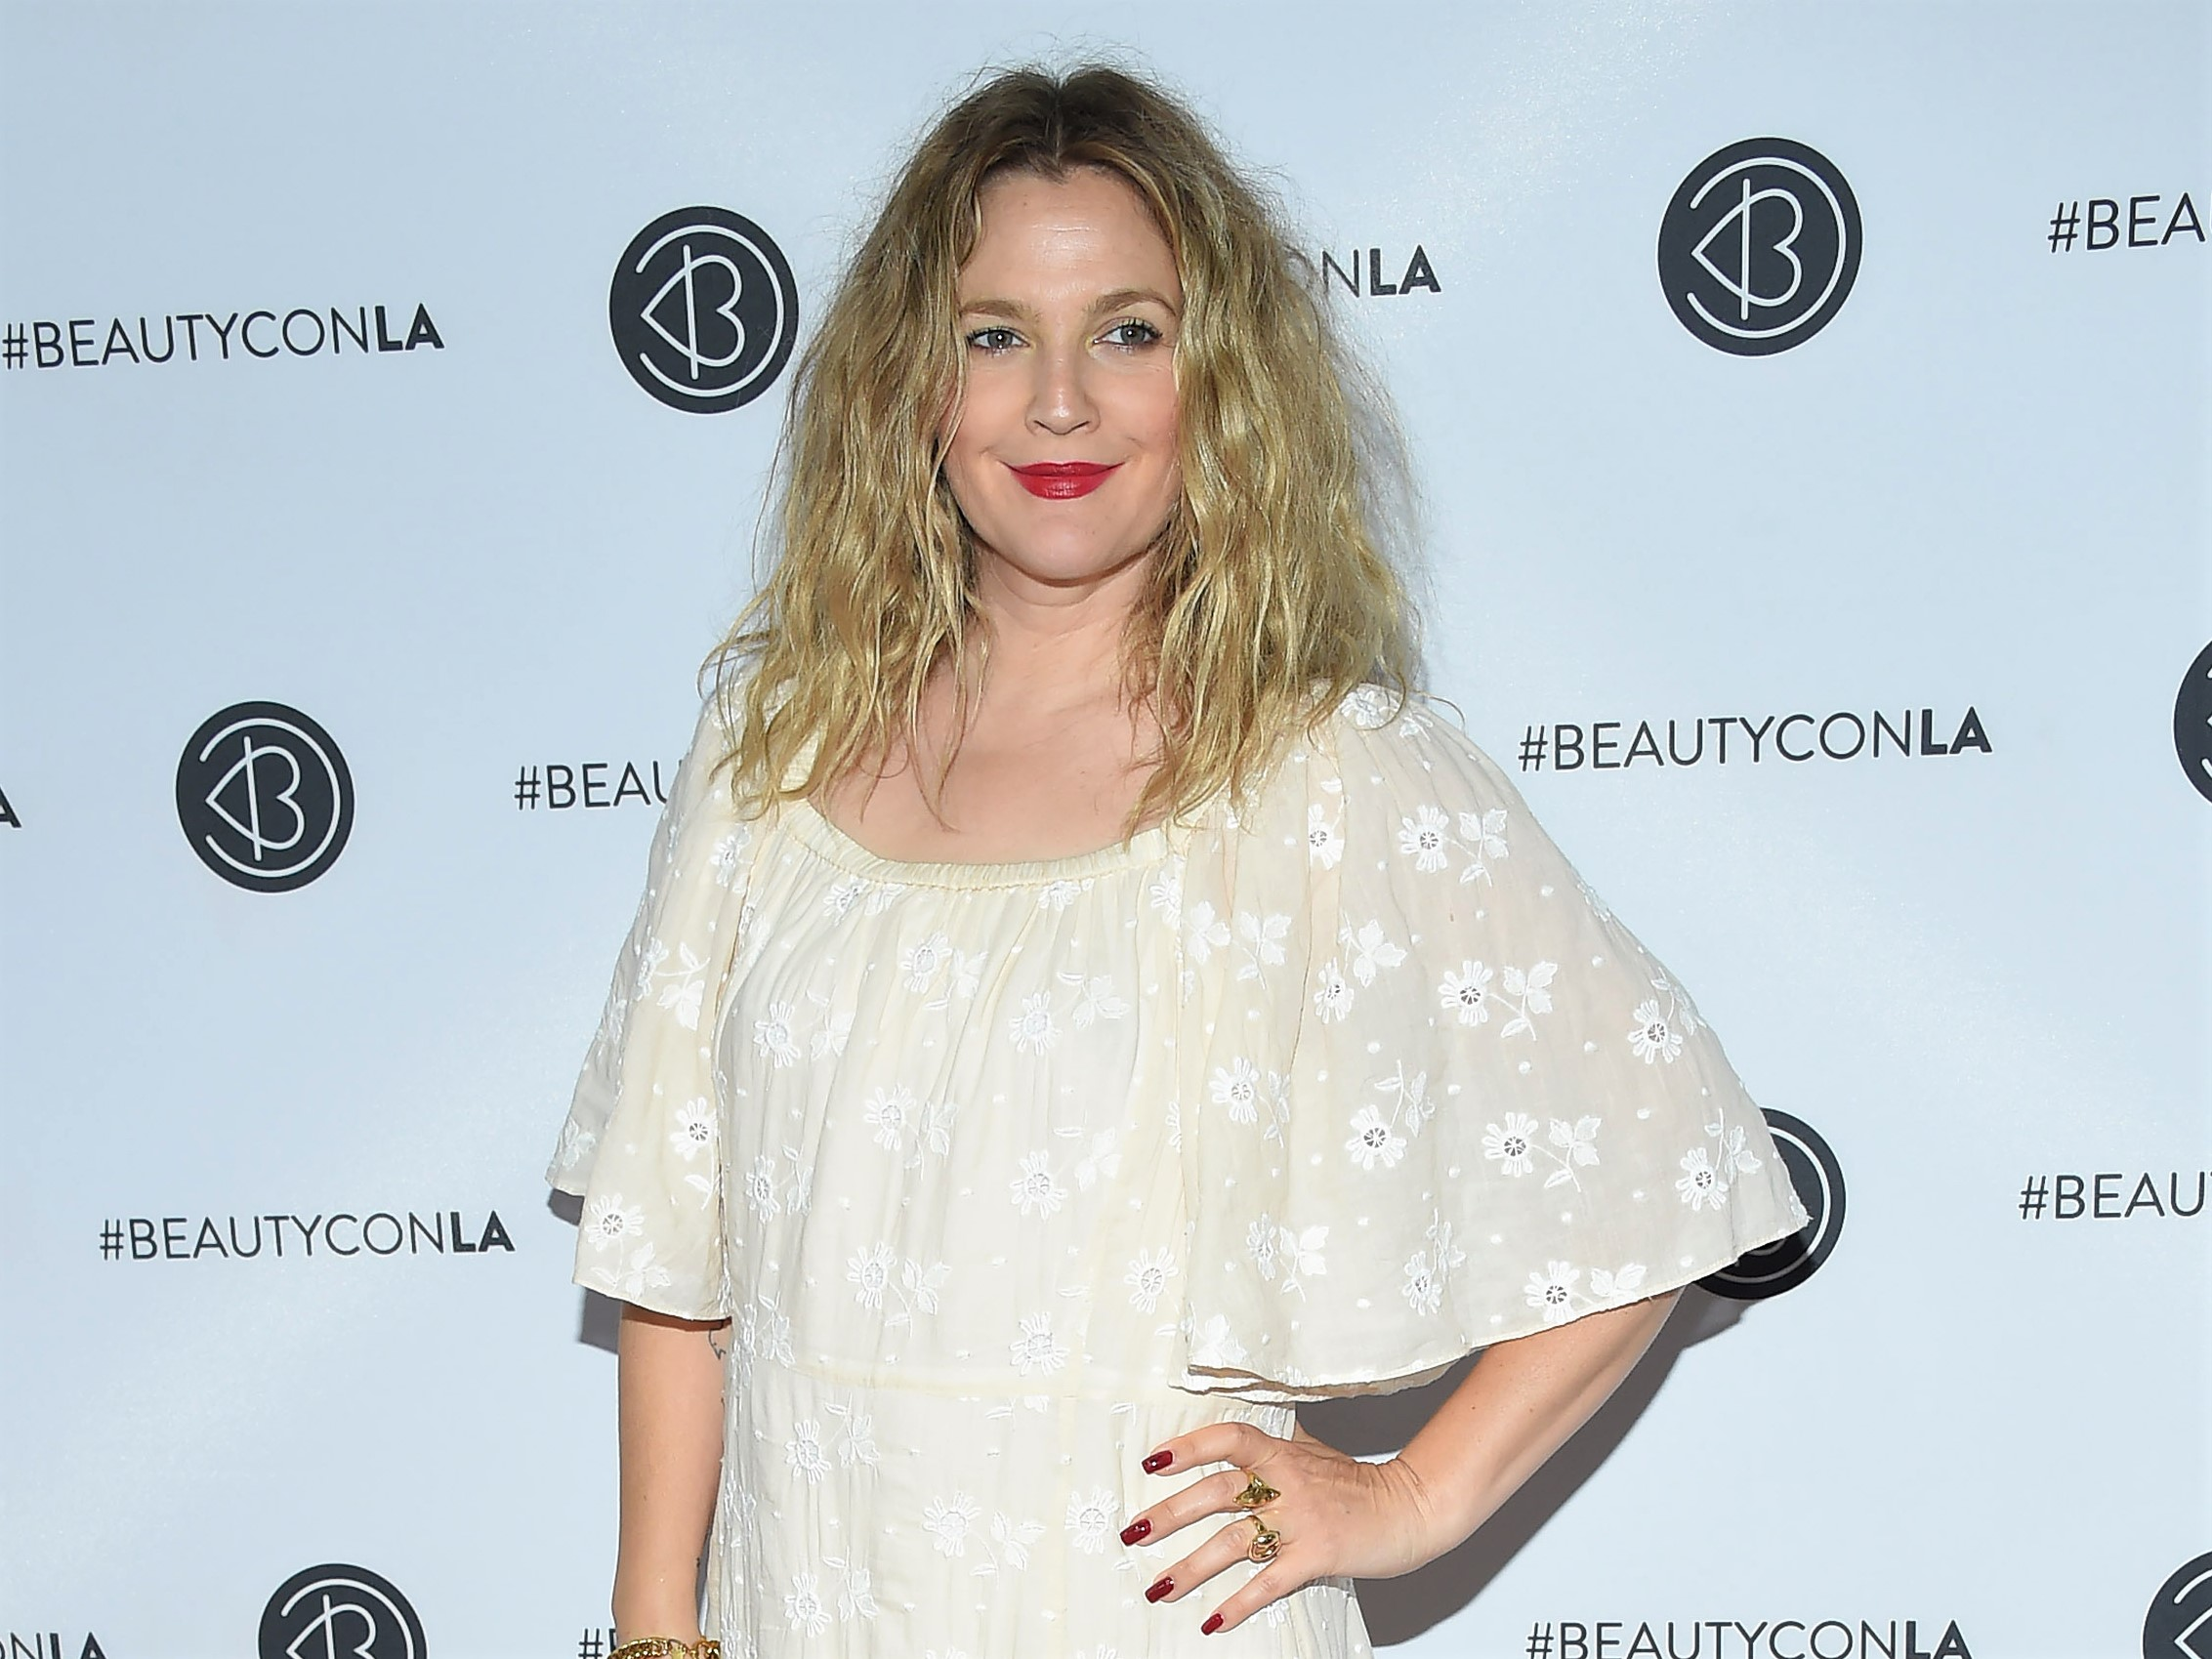 Drew Barrymore White Dress BeautyConLA Carpet